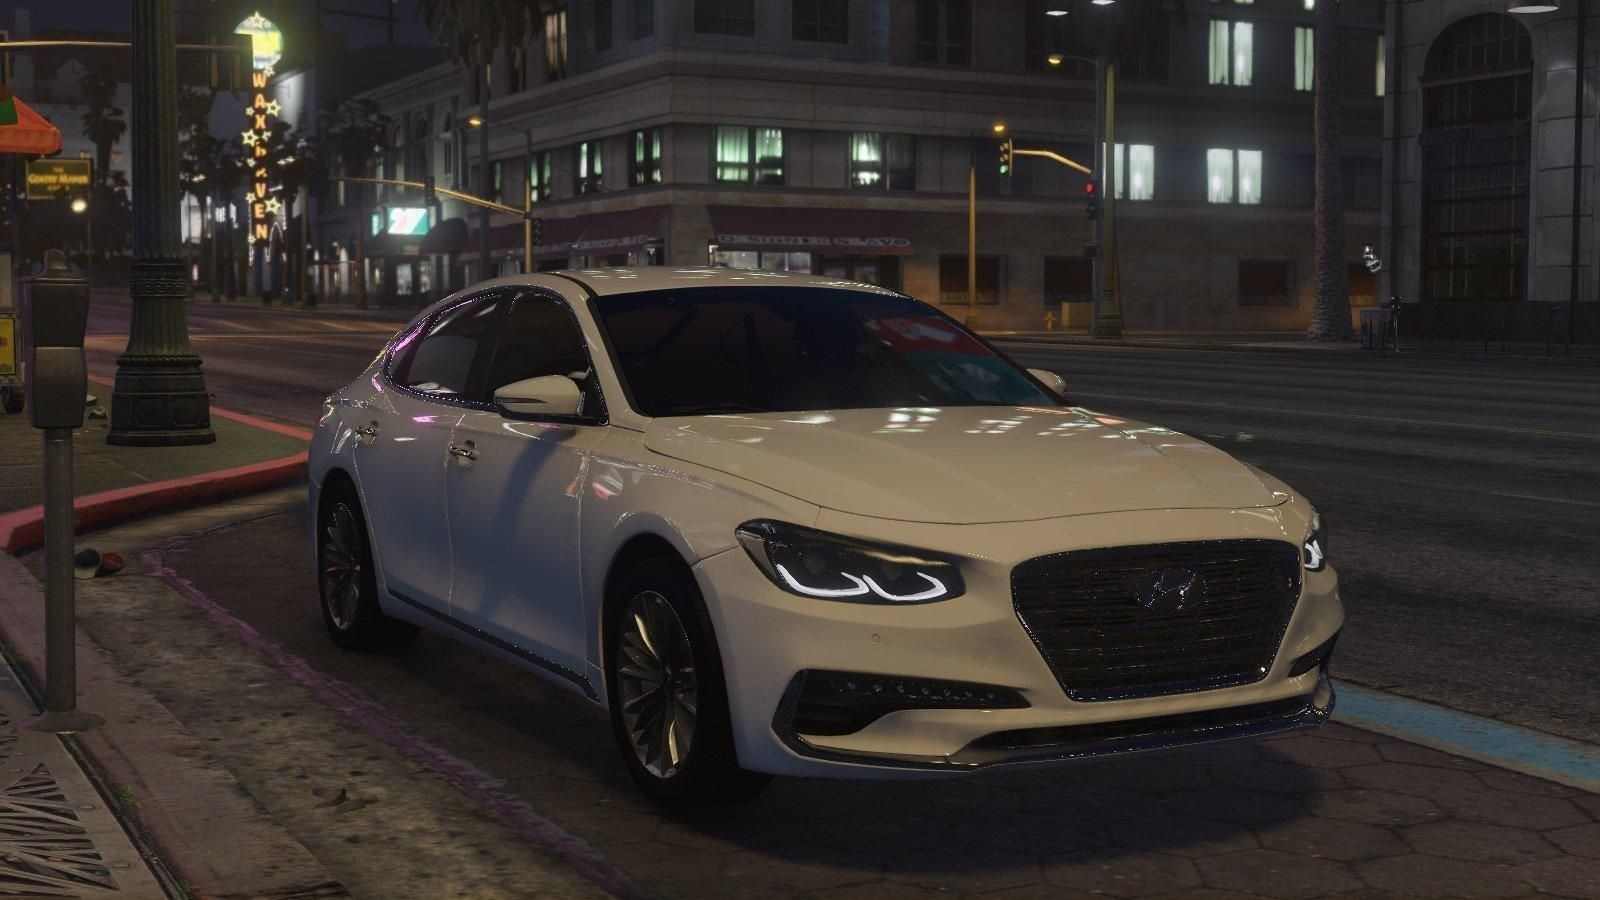 Hyundai Azera 2018 Gta5 Mods 1600x900 22944 In